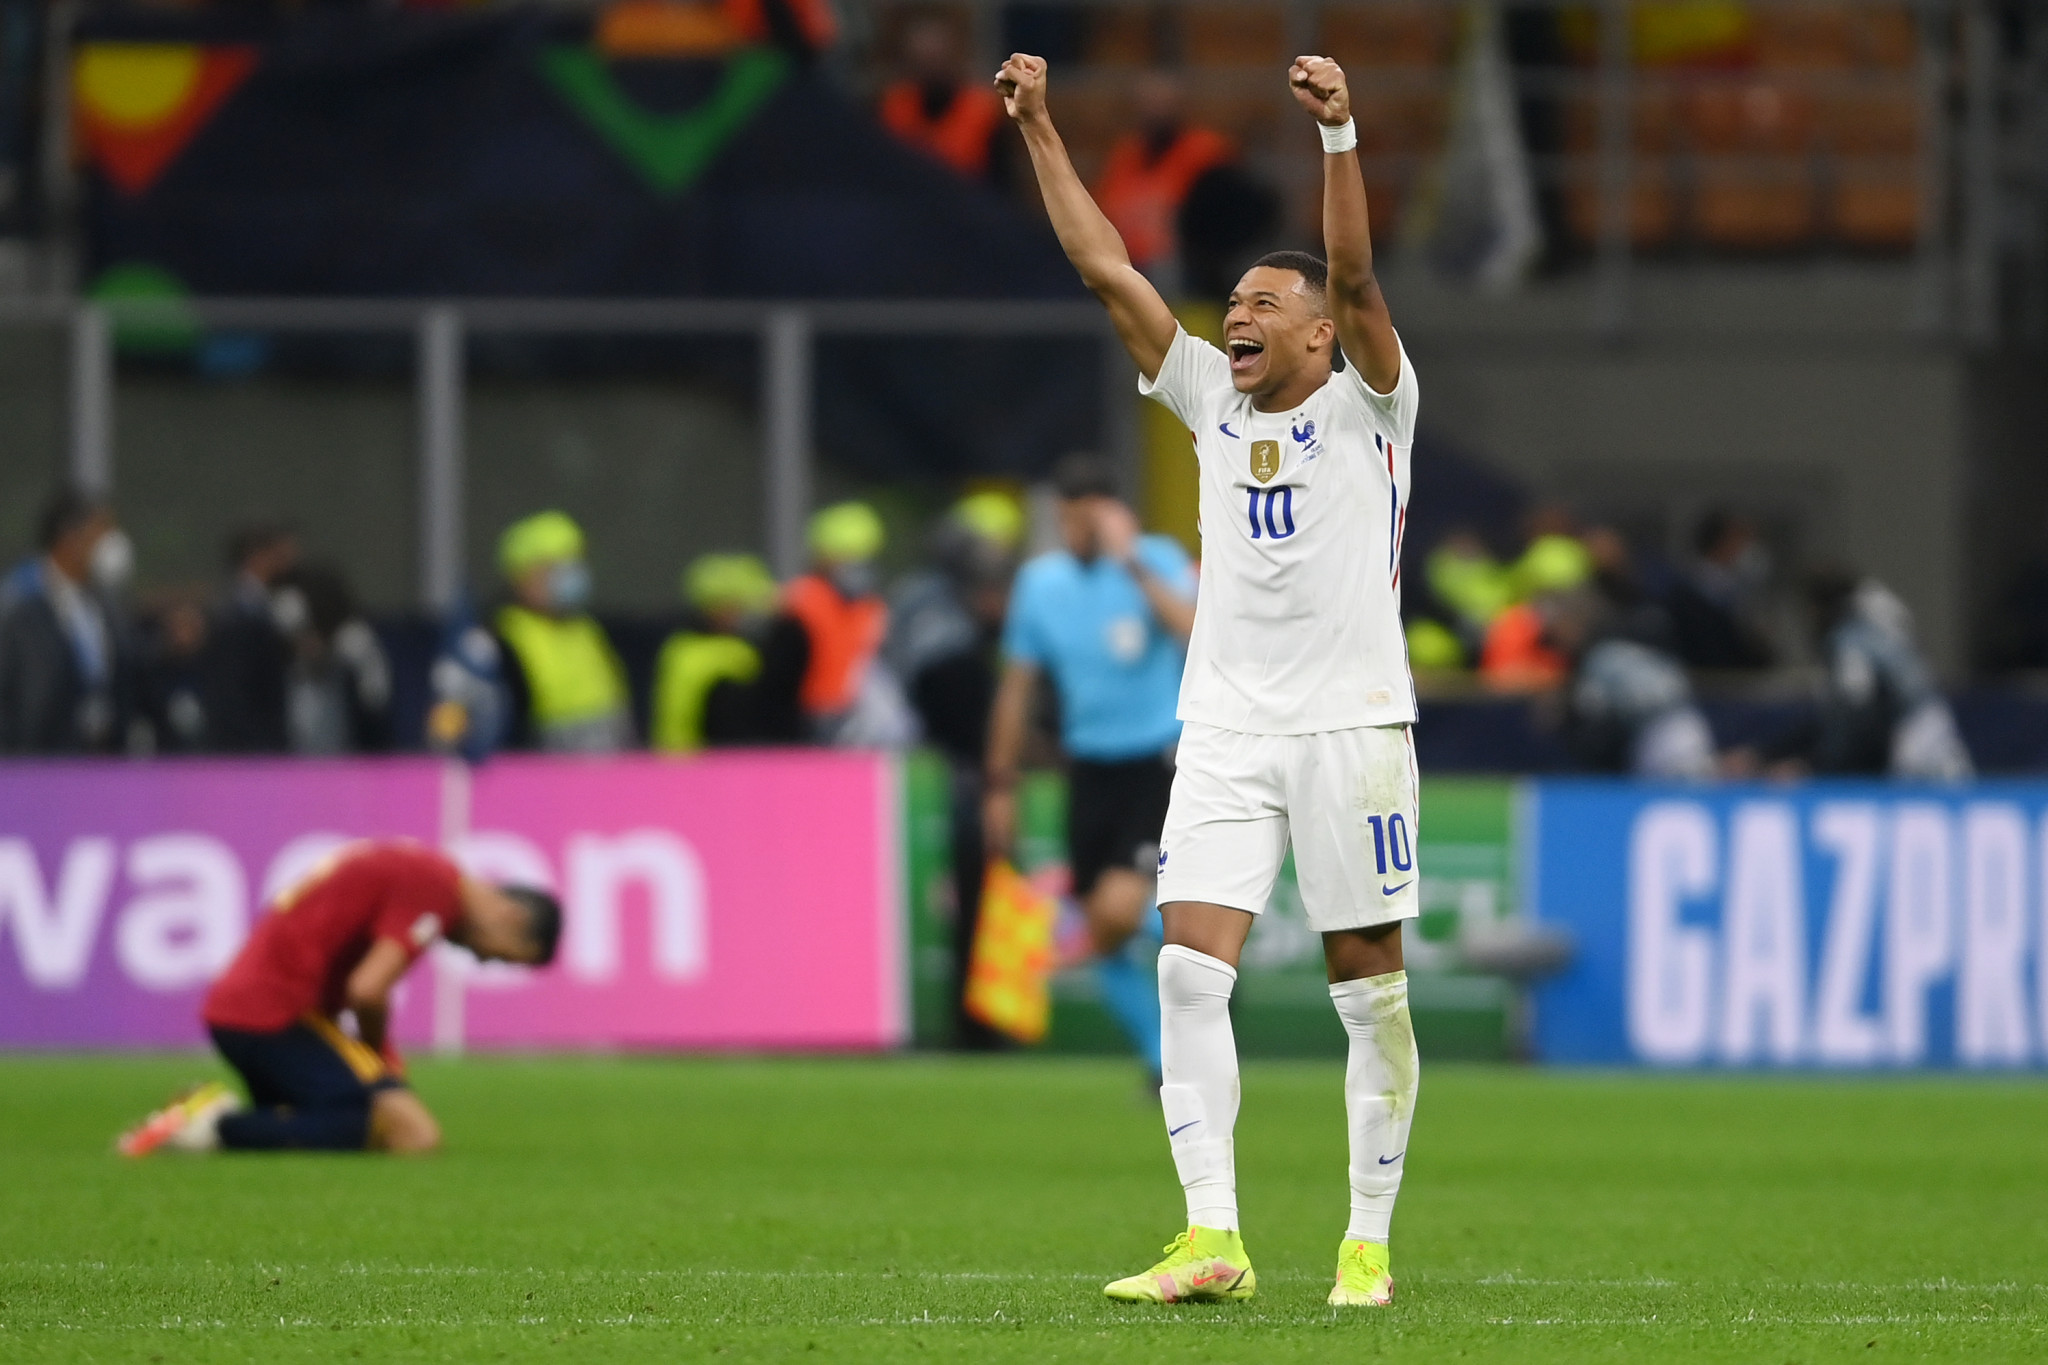 France come from behind again to claim UEFA Nations League title